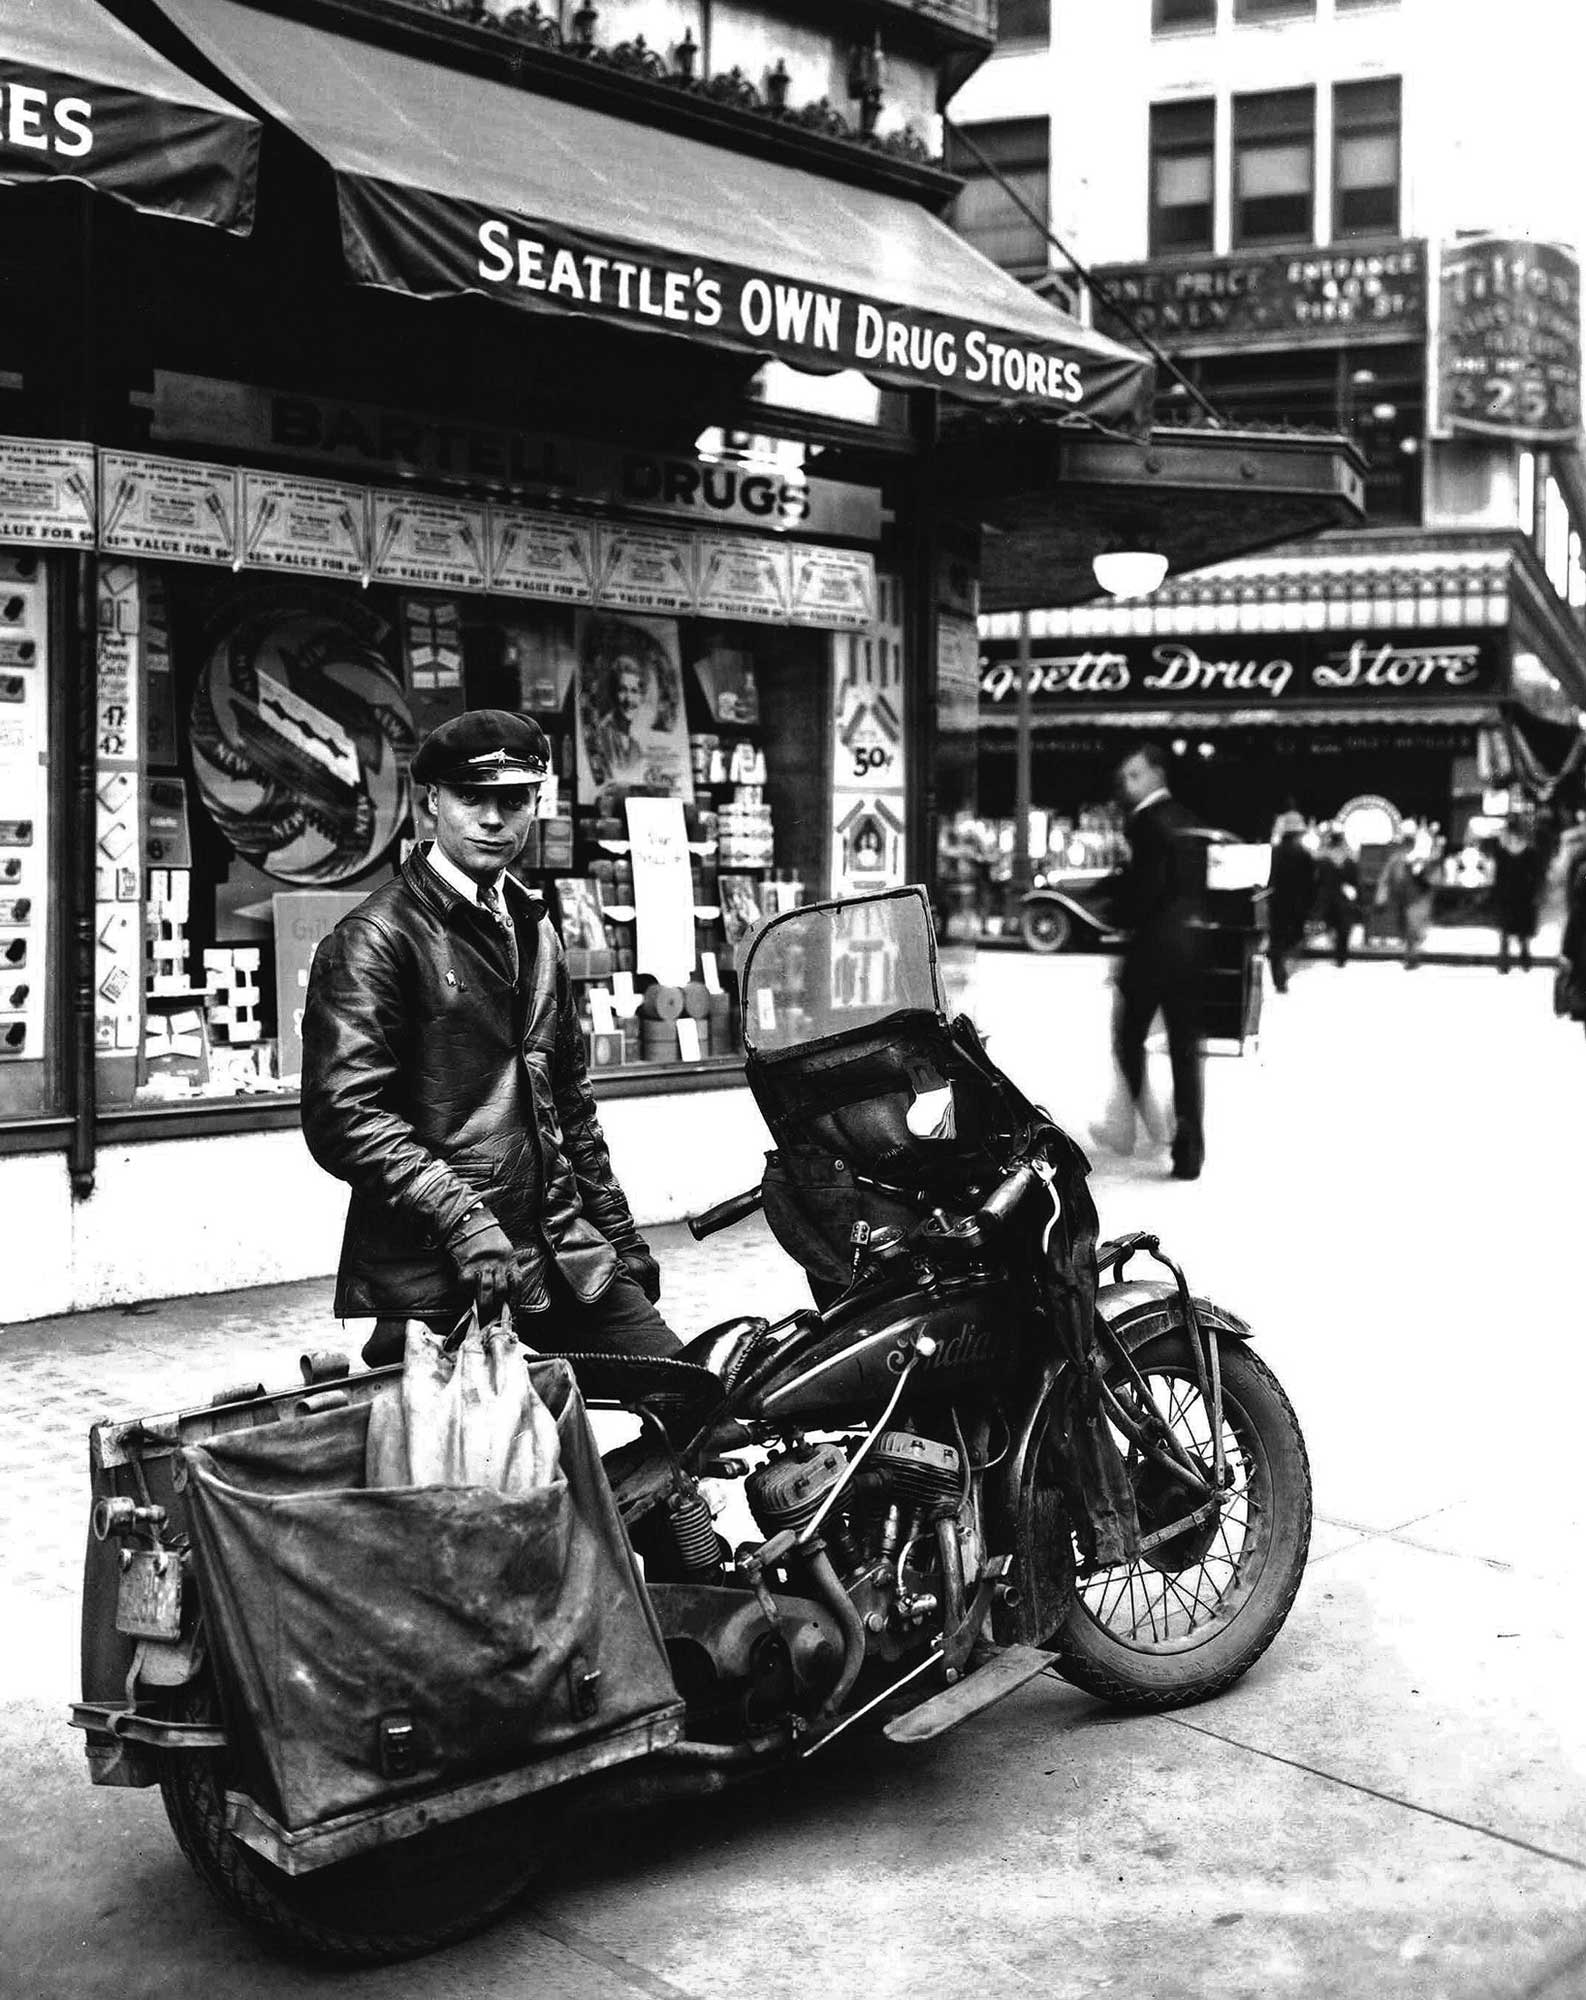 bartell-motorcycle-courier-mr-then.jpg